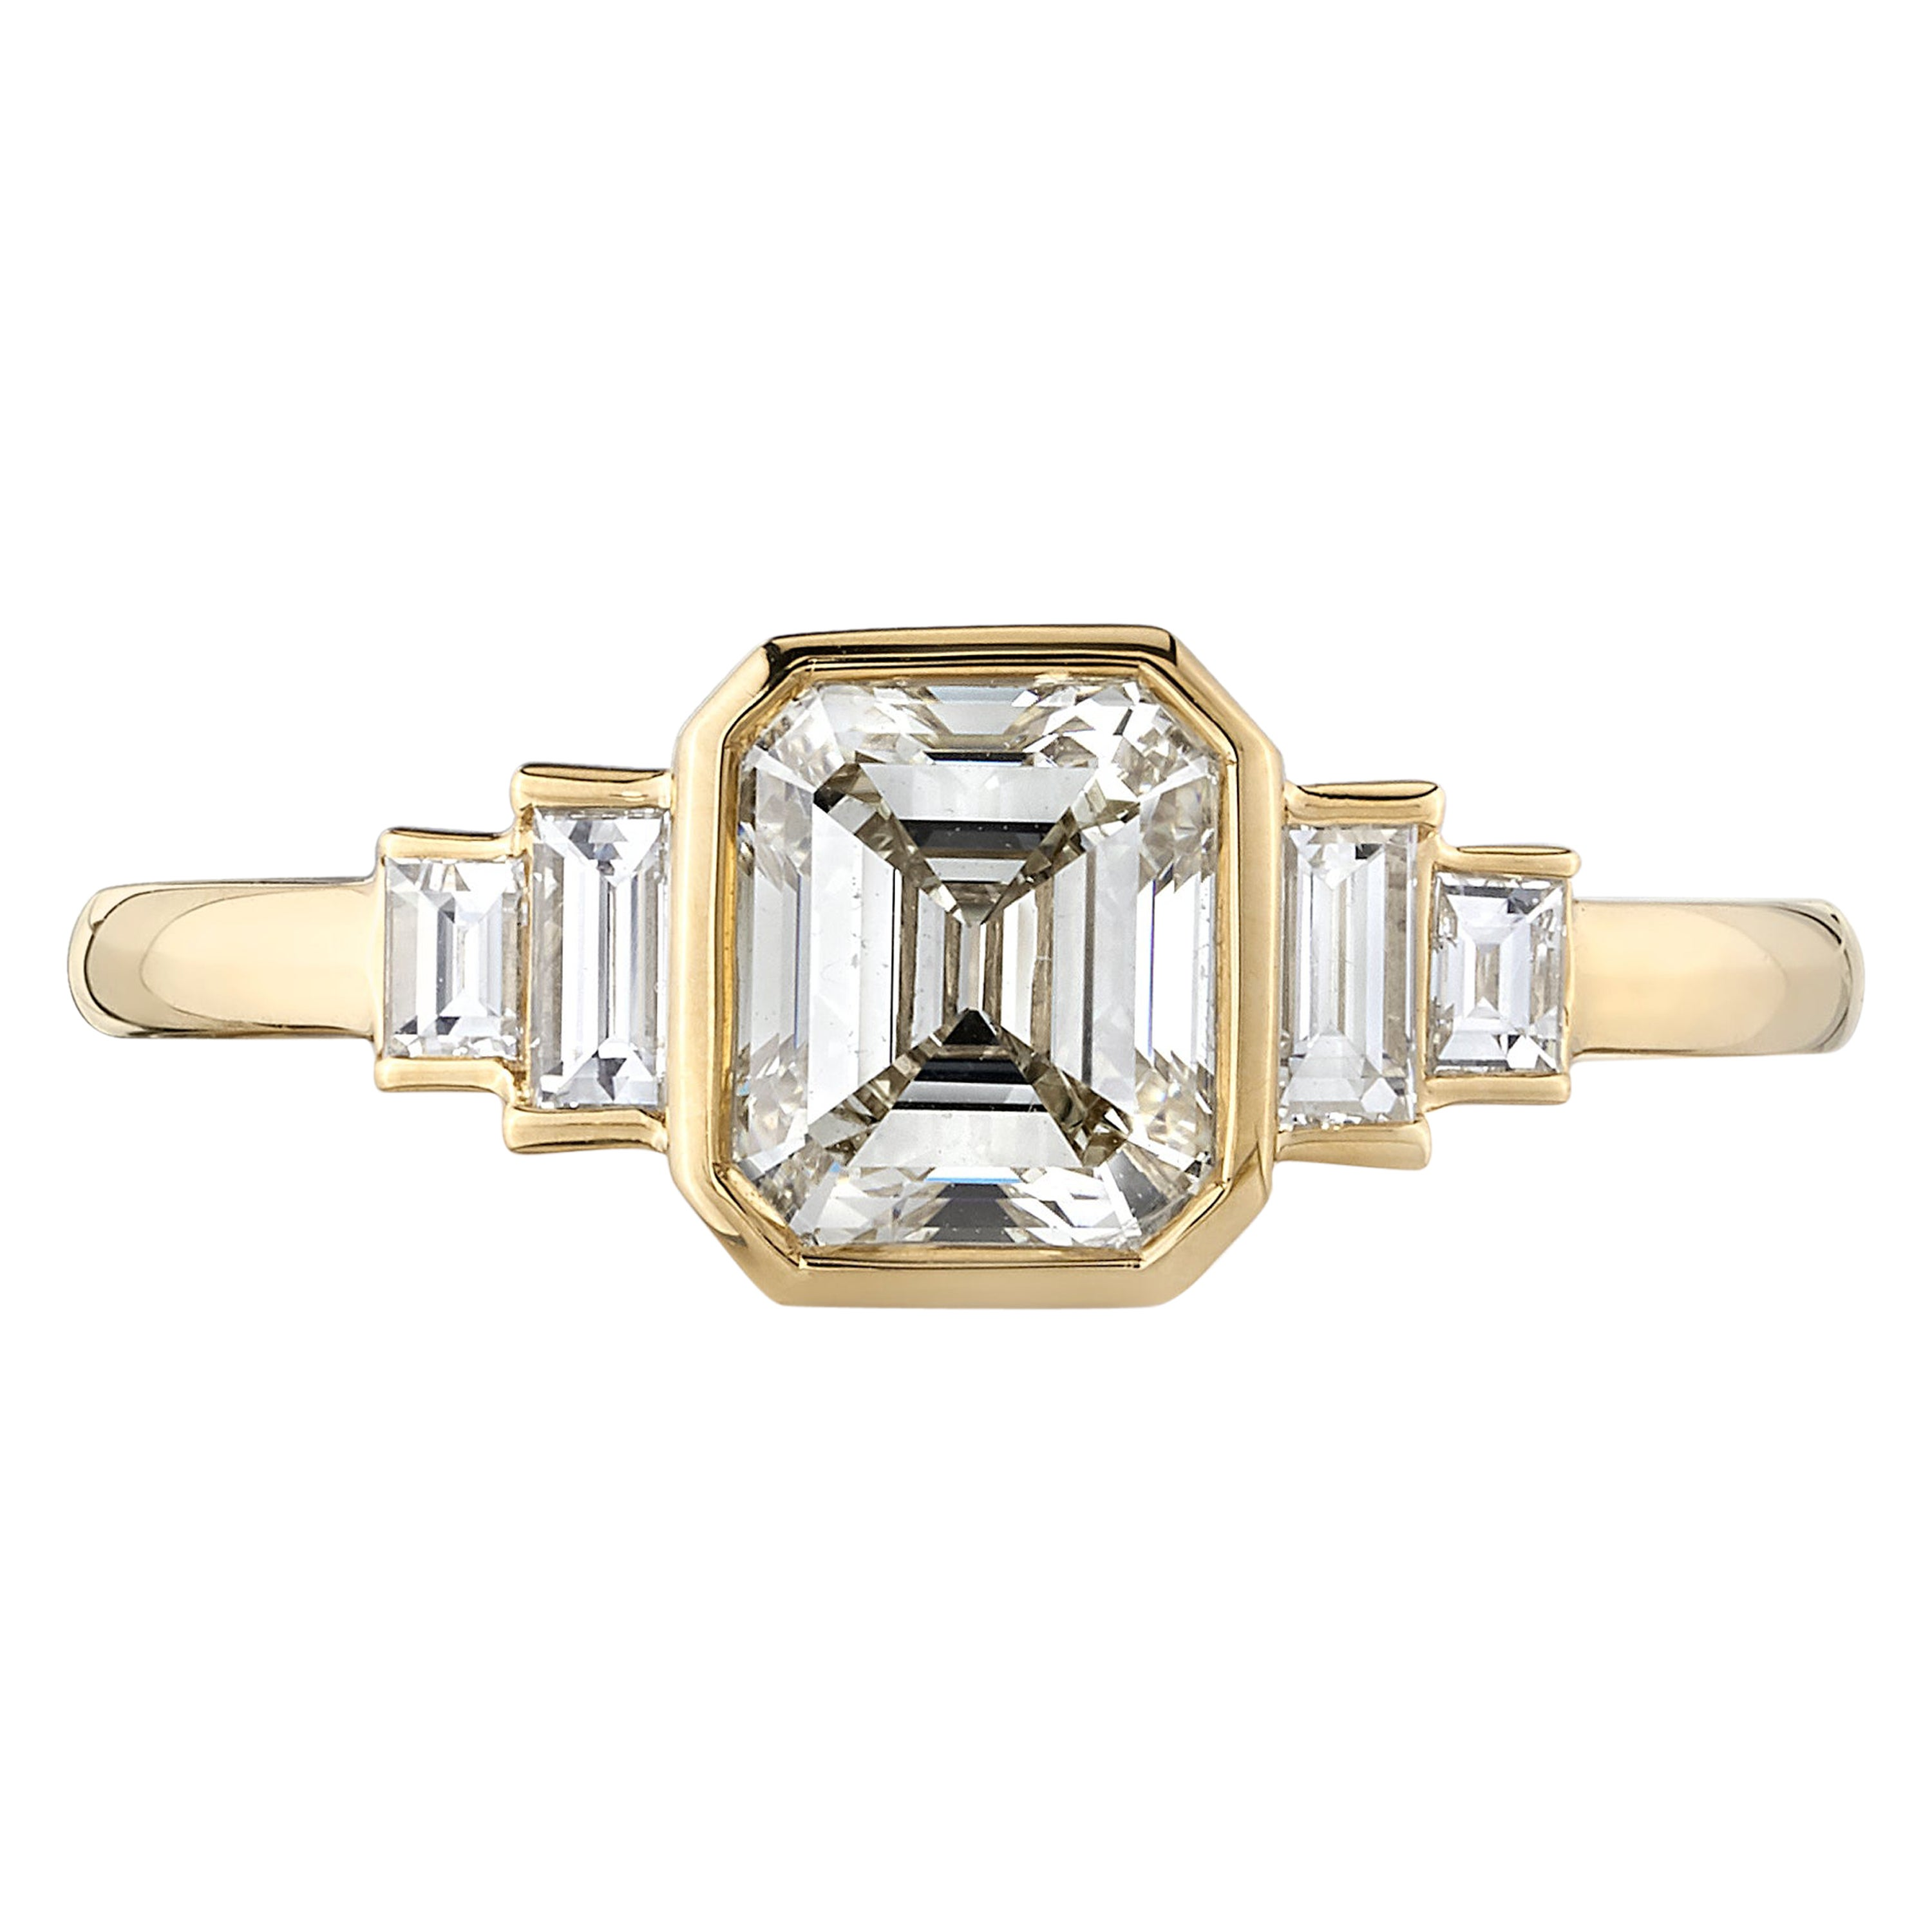 1.11 Carat Asscher Cut Diamond Set in a Handcrafted Yellow Gold Engagement Ring